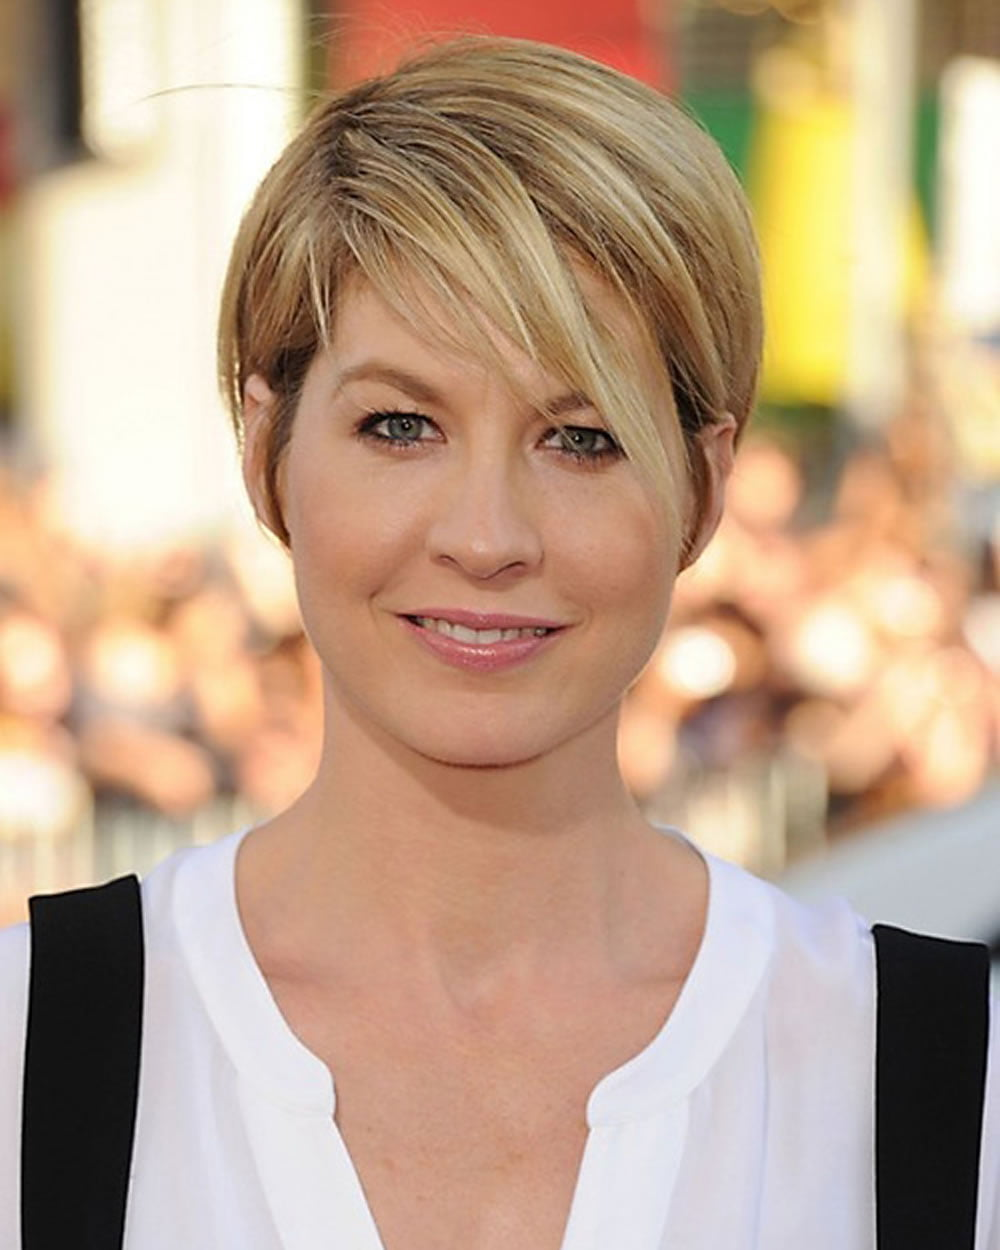 10 Latest Short Haircut for Fine Hair Stylish Short Hair Color Trends